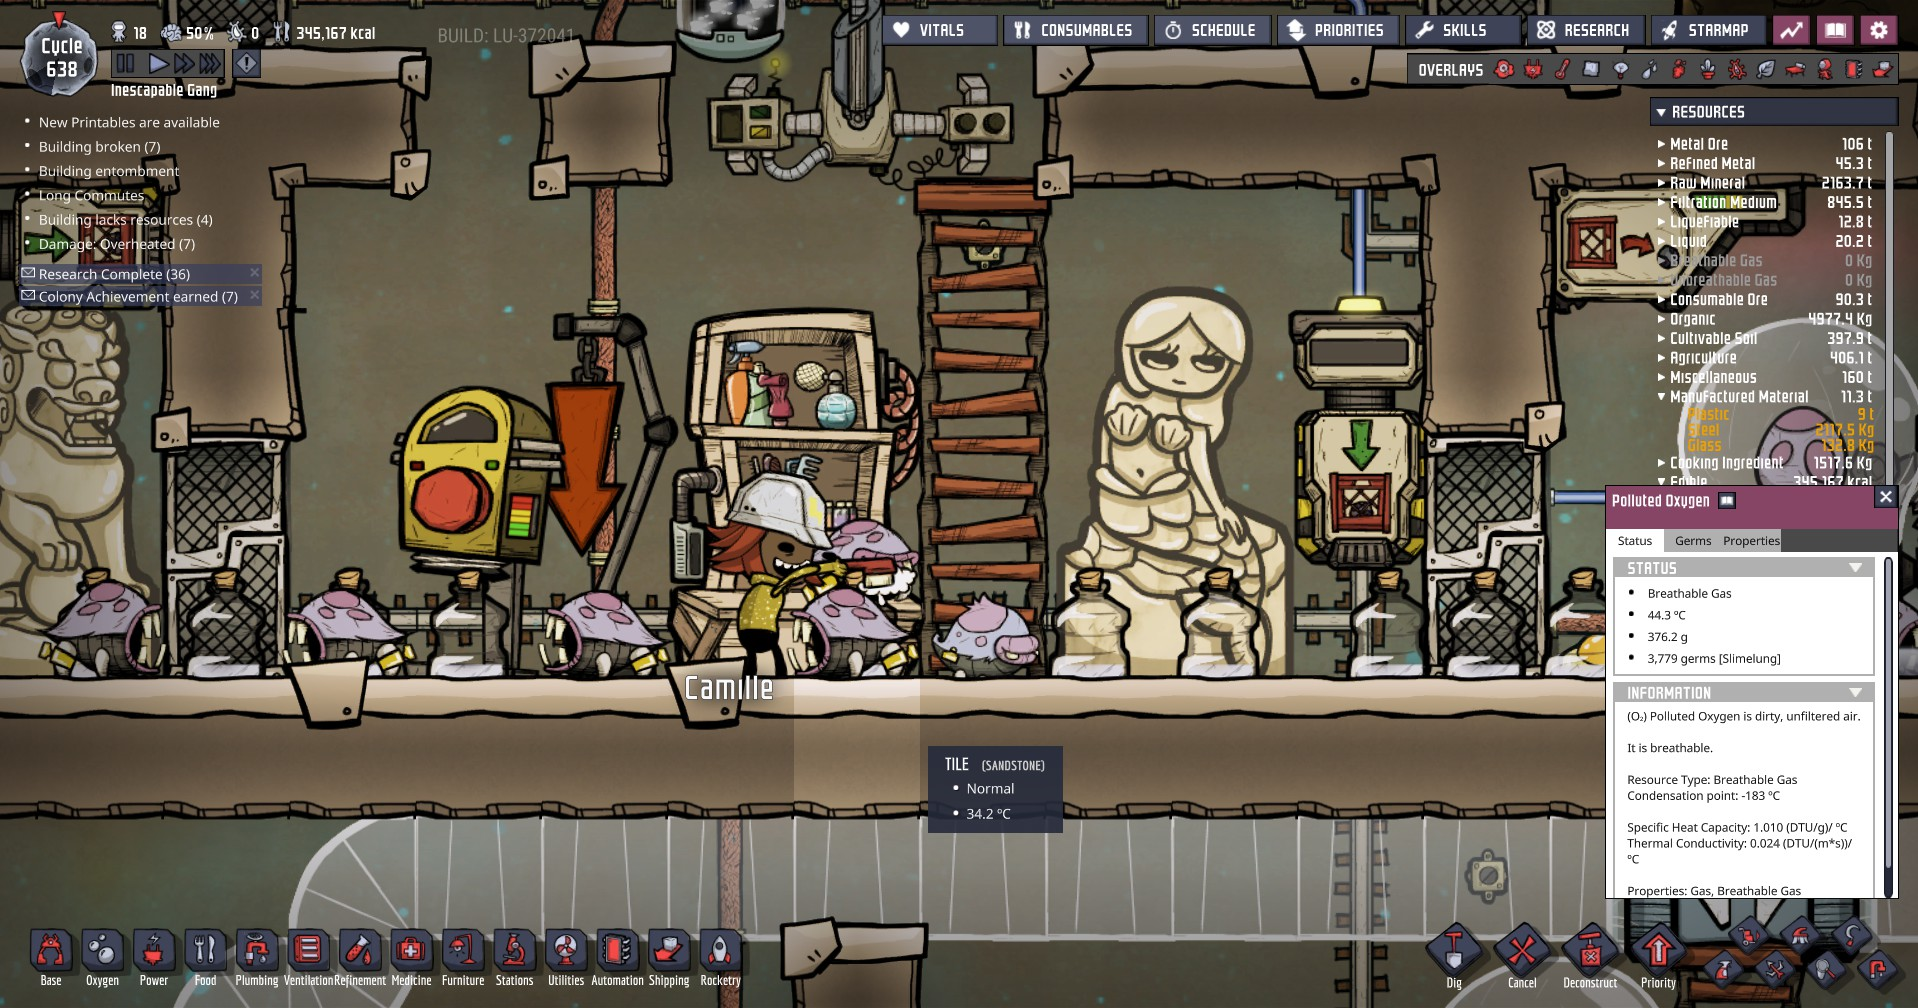 Oxygen Not Included: pet care